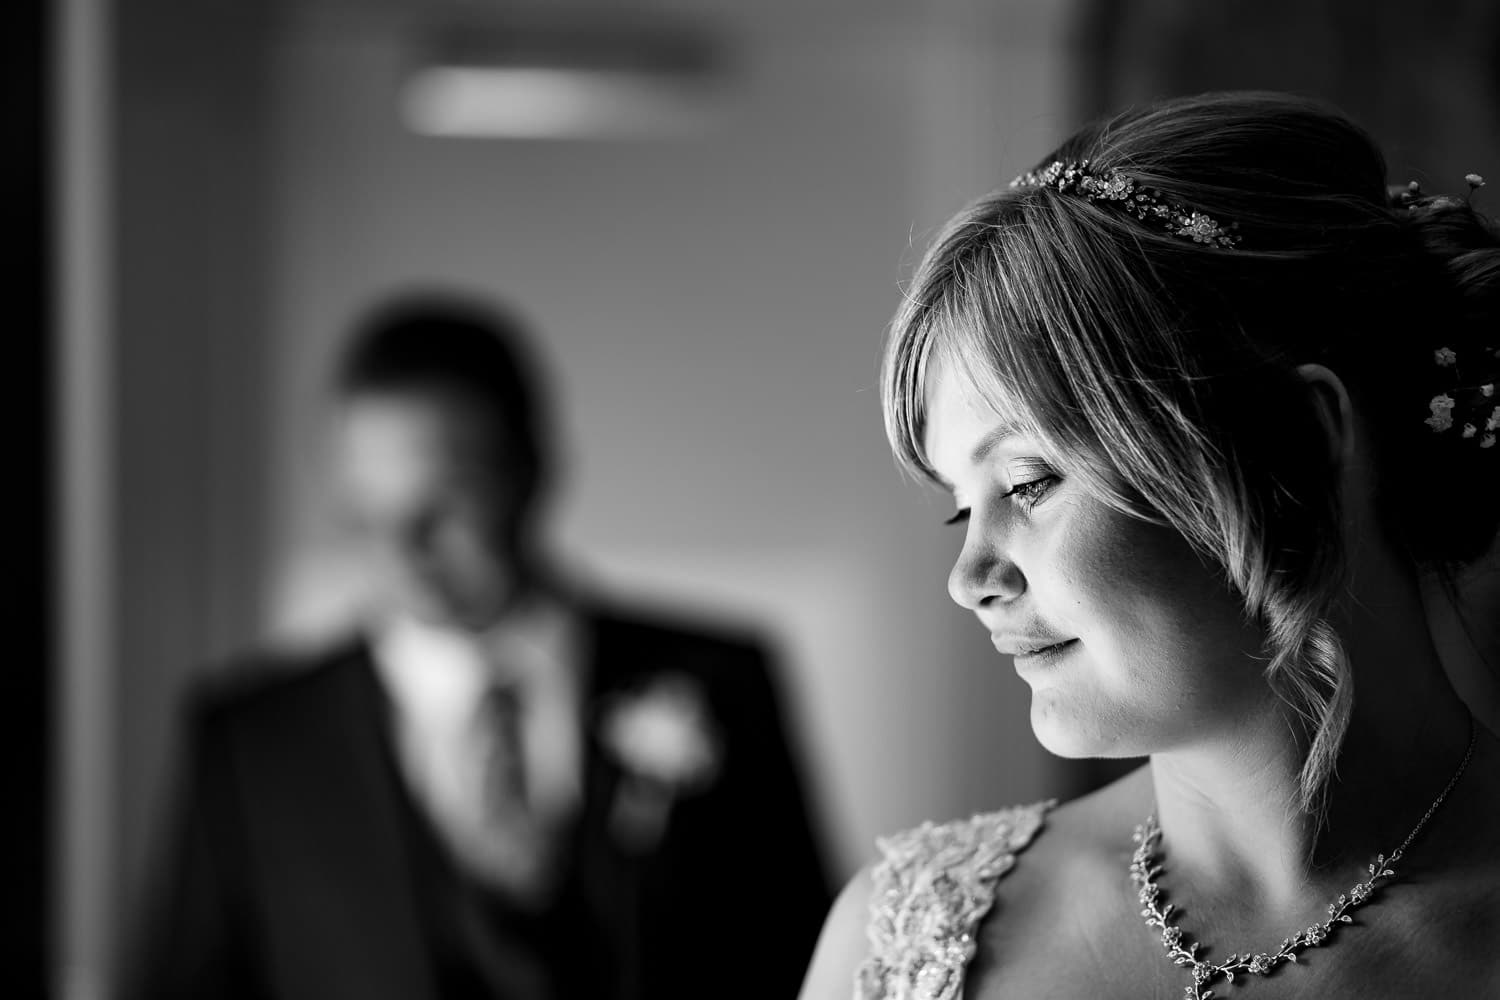 Chapter One Photography captures a quite moment with the bride and groom during portrait session